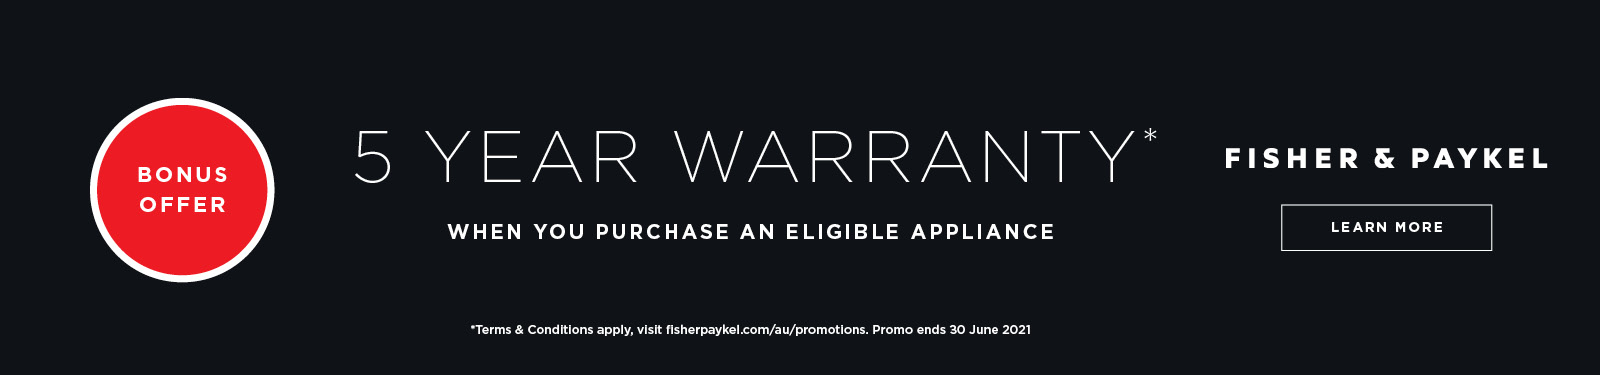 wf145461-fp-au-5-year-warranty-promotion-extension-spartan-front-page-slider-1600x375px.jpg